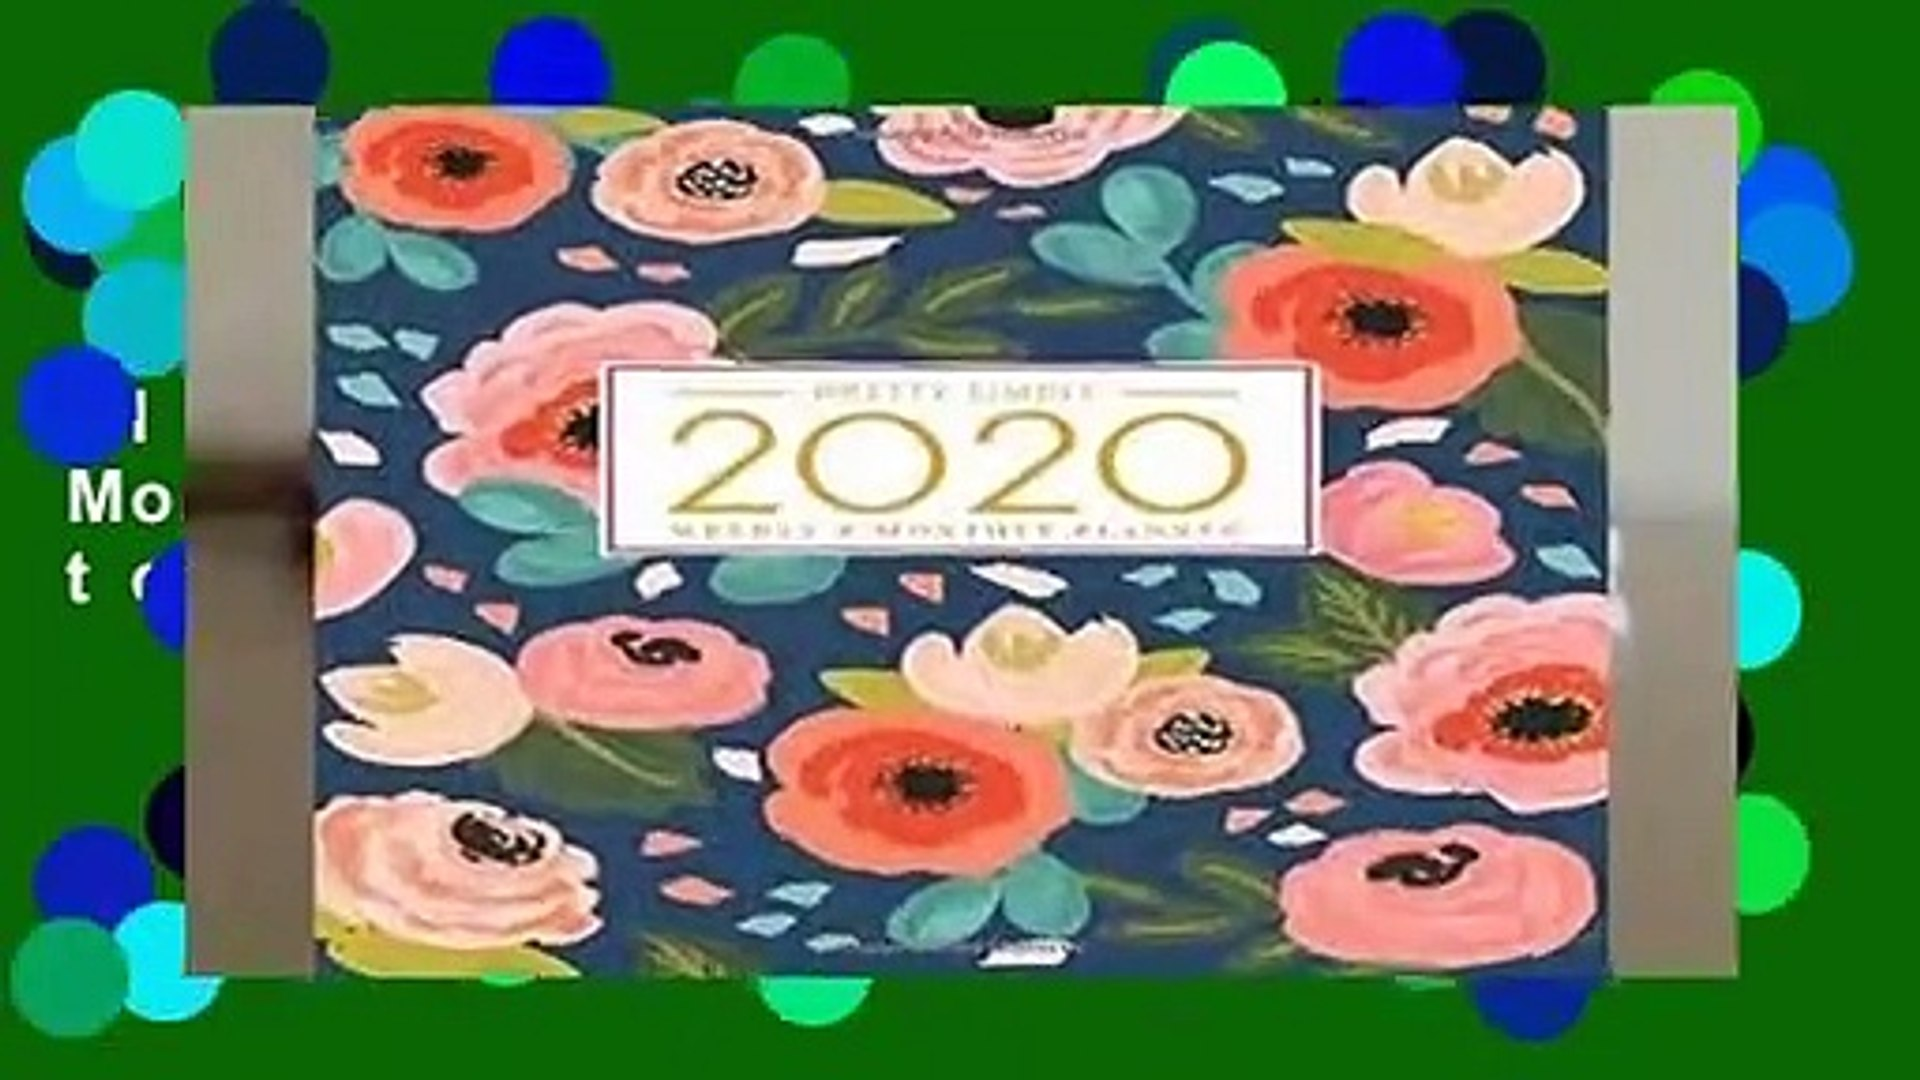 Full E-book  2020 Planner Weekly and Monthly: Jan 1, 2020 to Dec 31, 2020: Weekly   Monthly